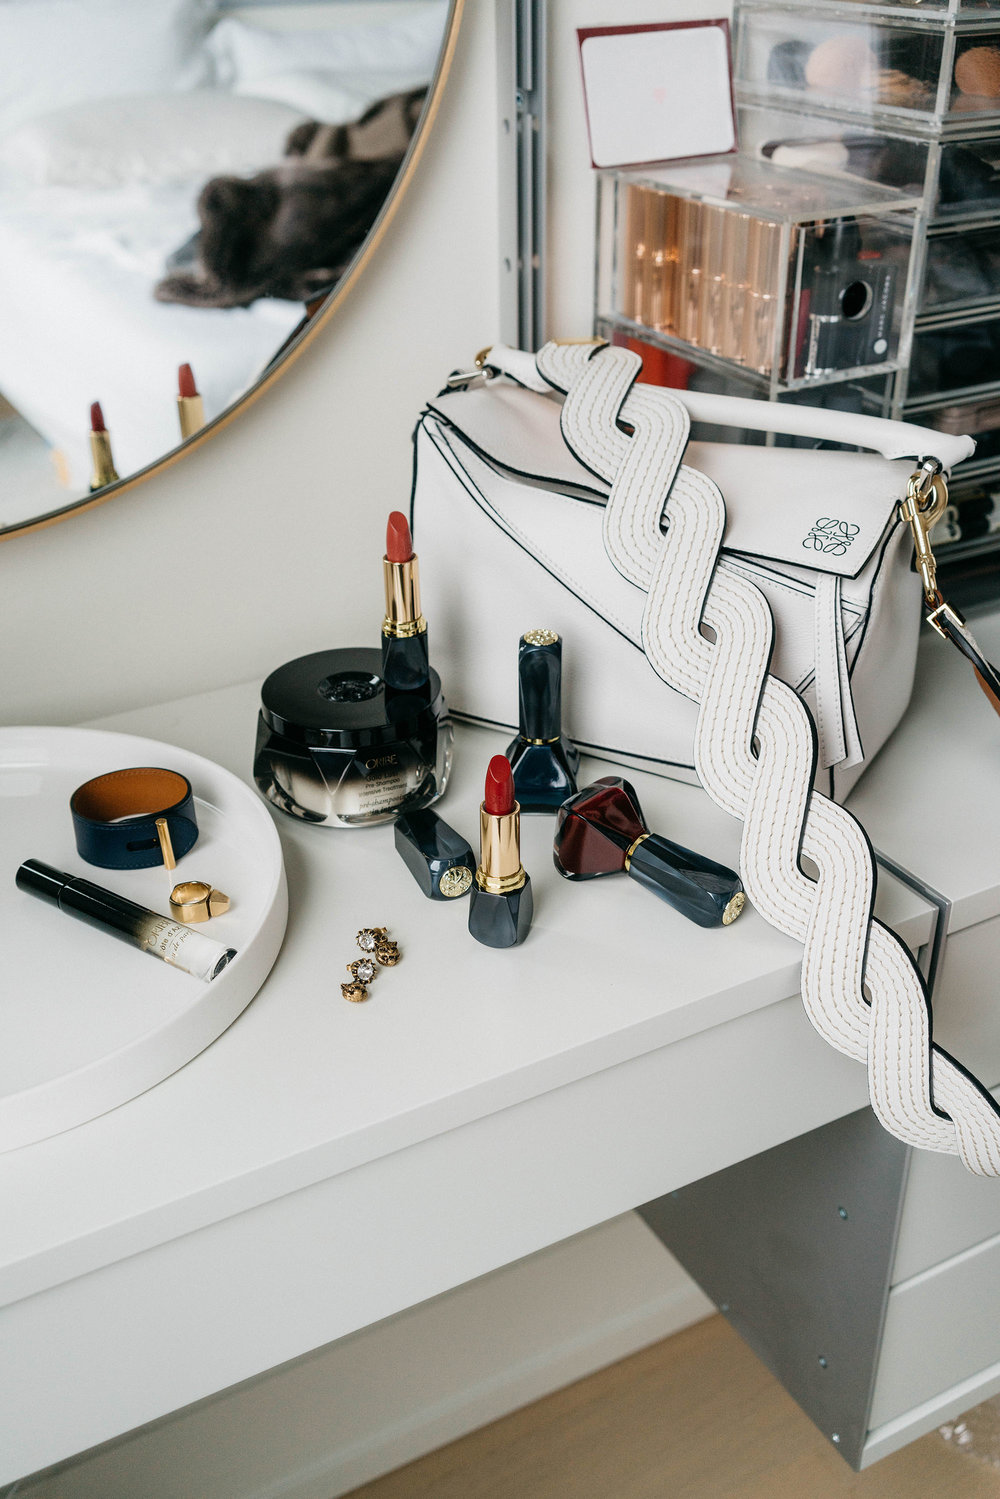 Hermes Bracelet, Saint Laurent Ring, Gucci Earrings, Oribe Beauty, Loewe Bag